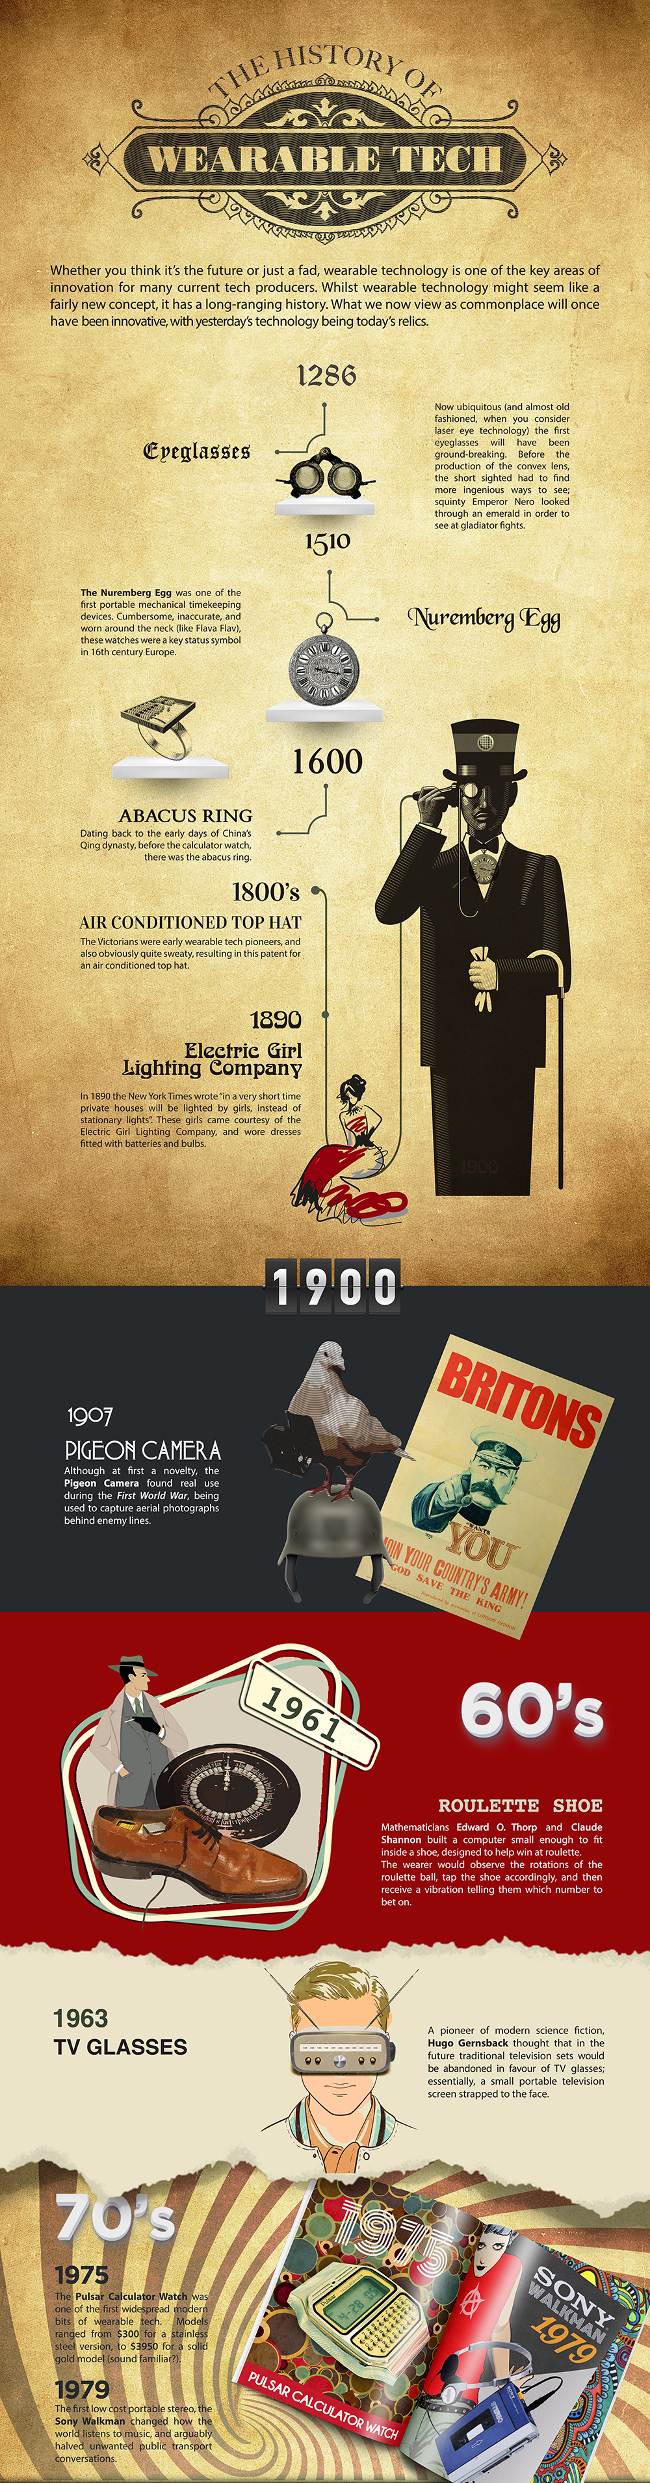 The-History-Of-Wearable-Tech